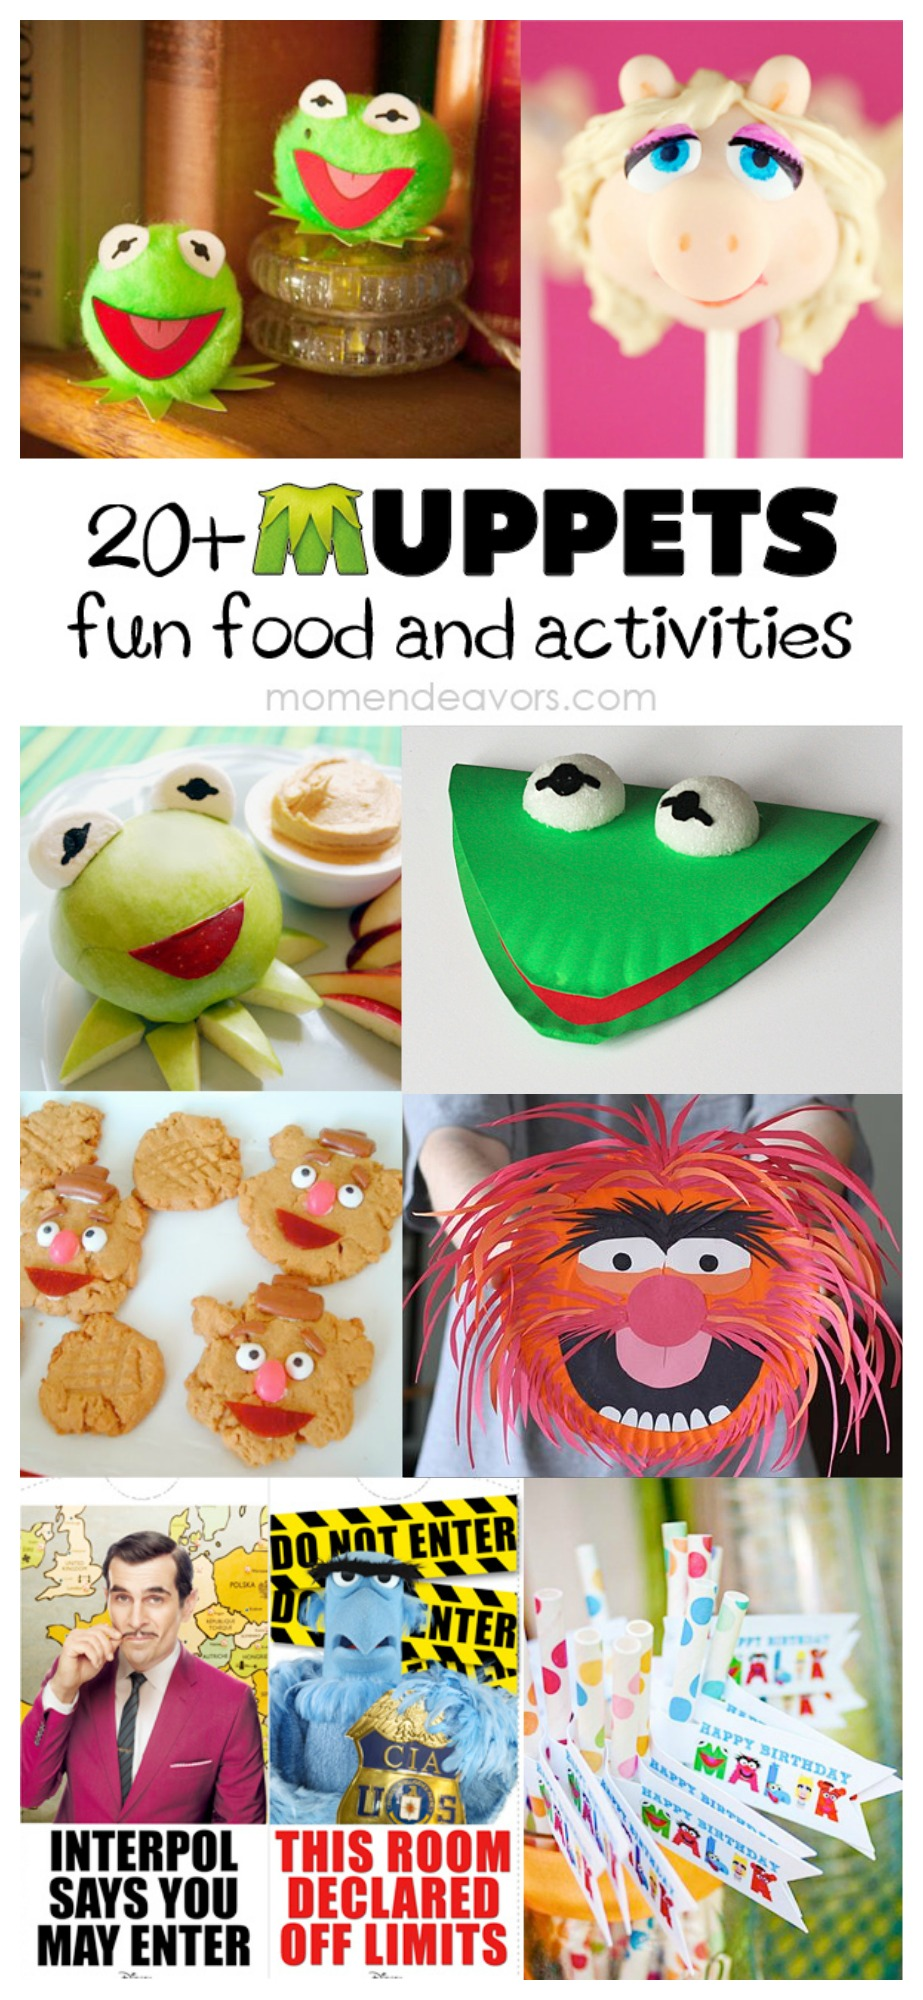 Muppets Fun Foods & Activities